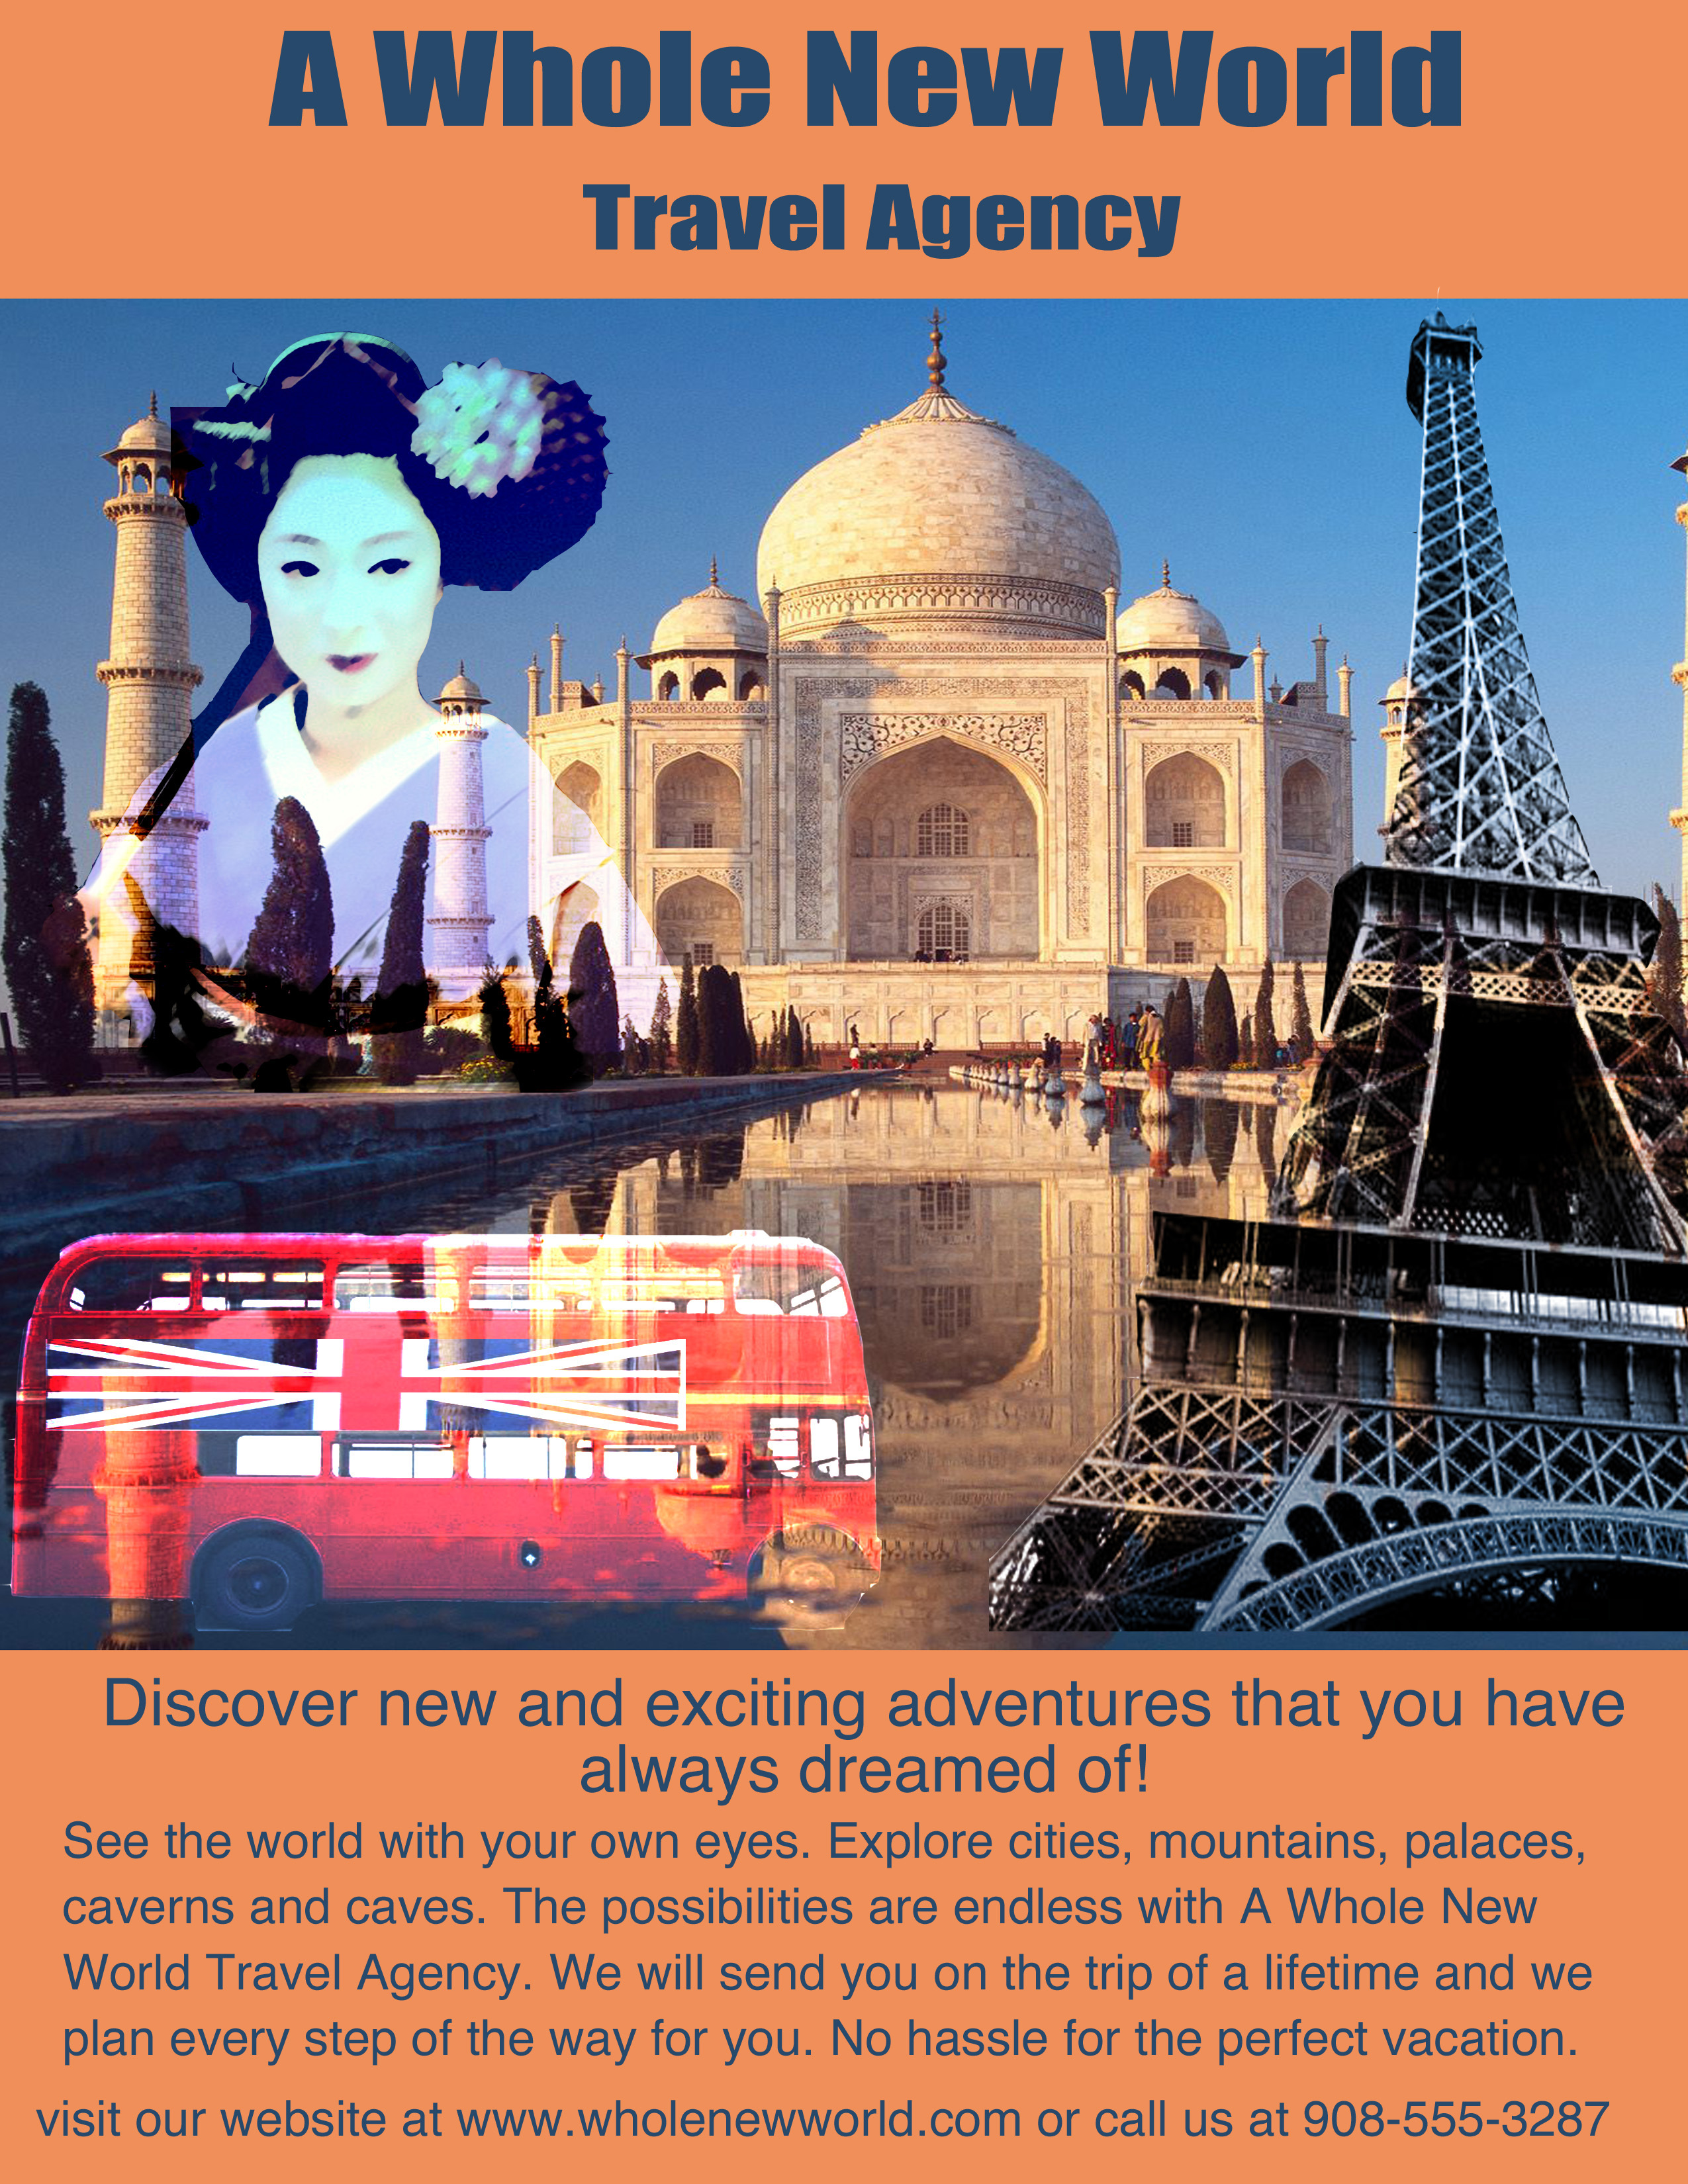 When Designing An Advertisement It Is Crucial To Catch The Consumers Attention A Travel Company Must Convey Excitement And Wonder Of Traveling